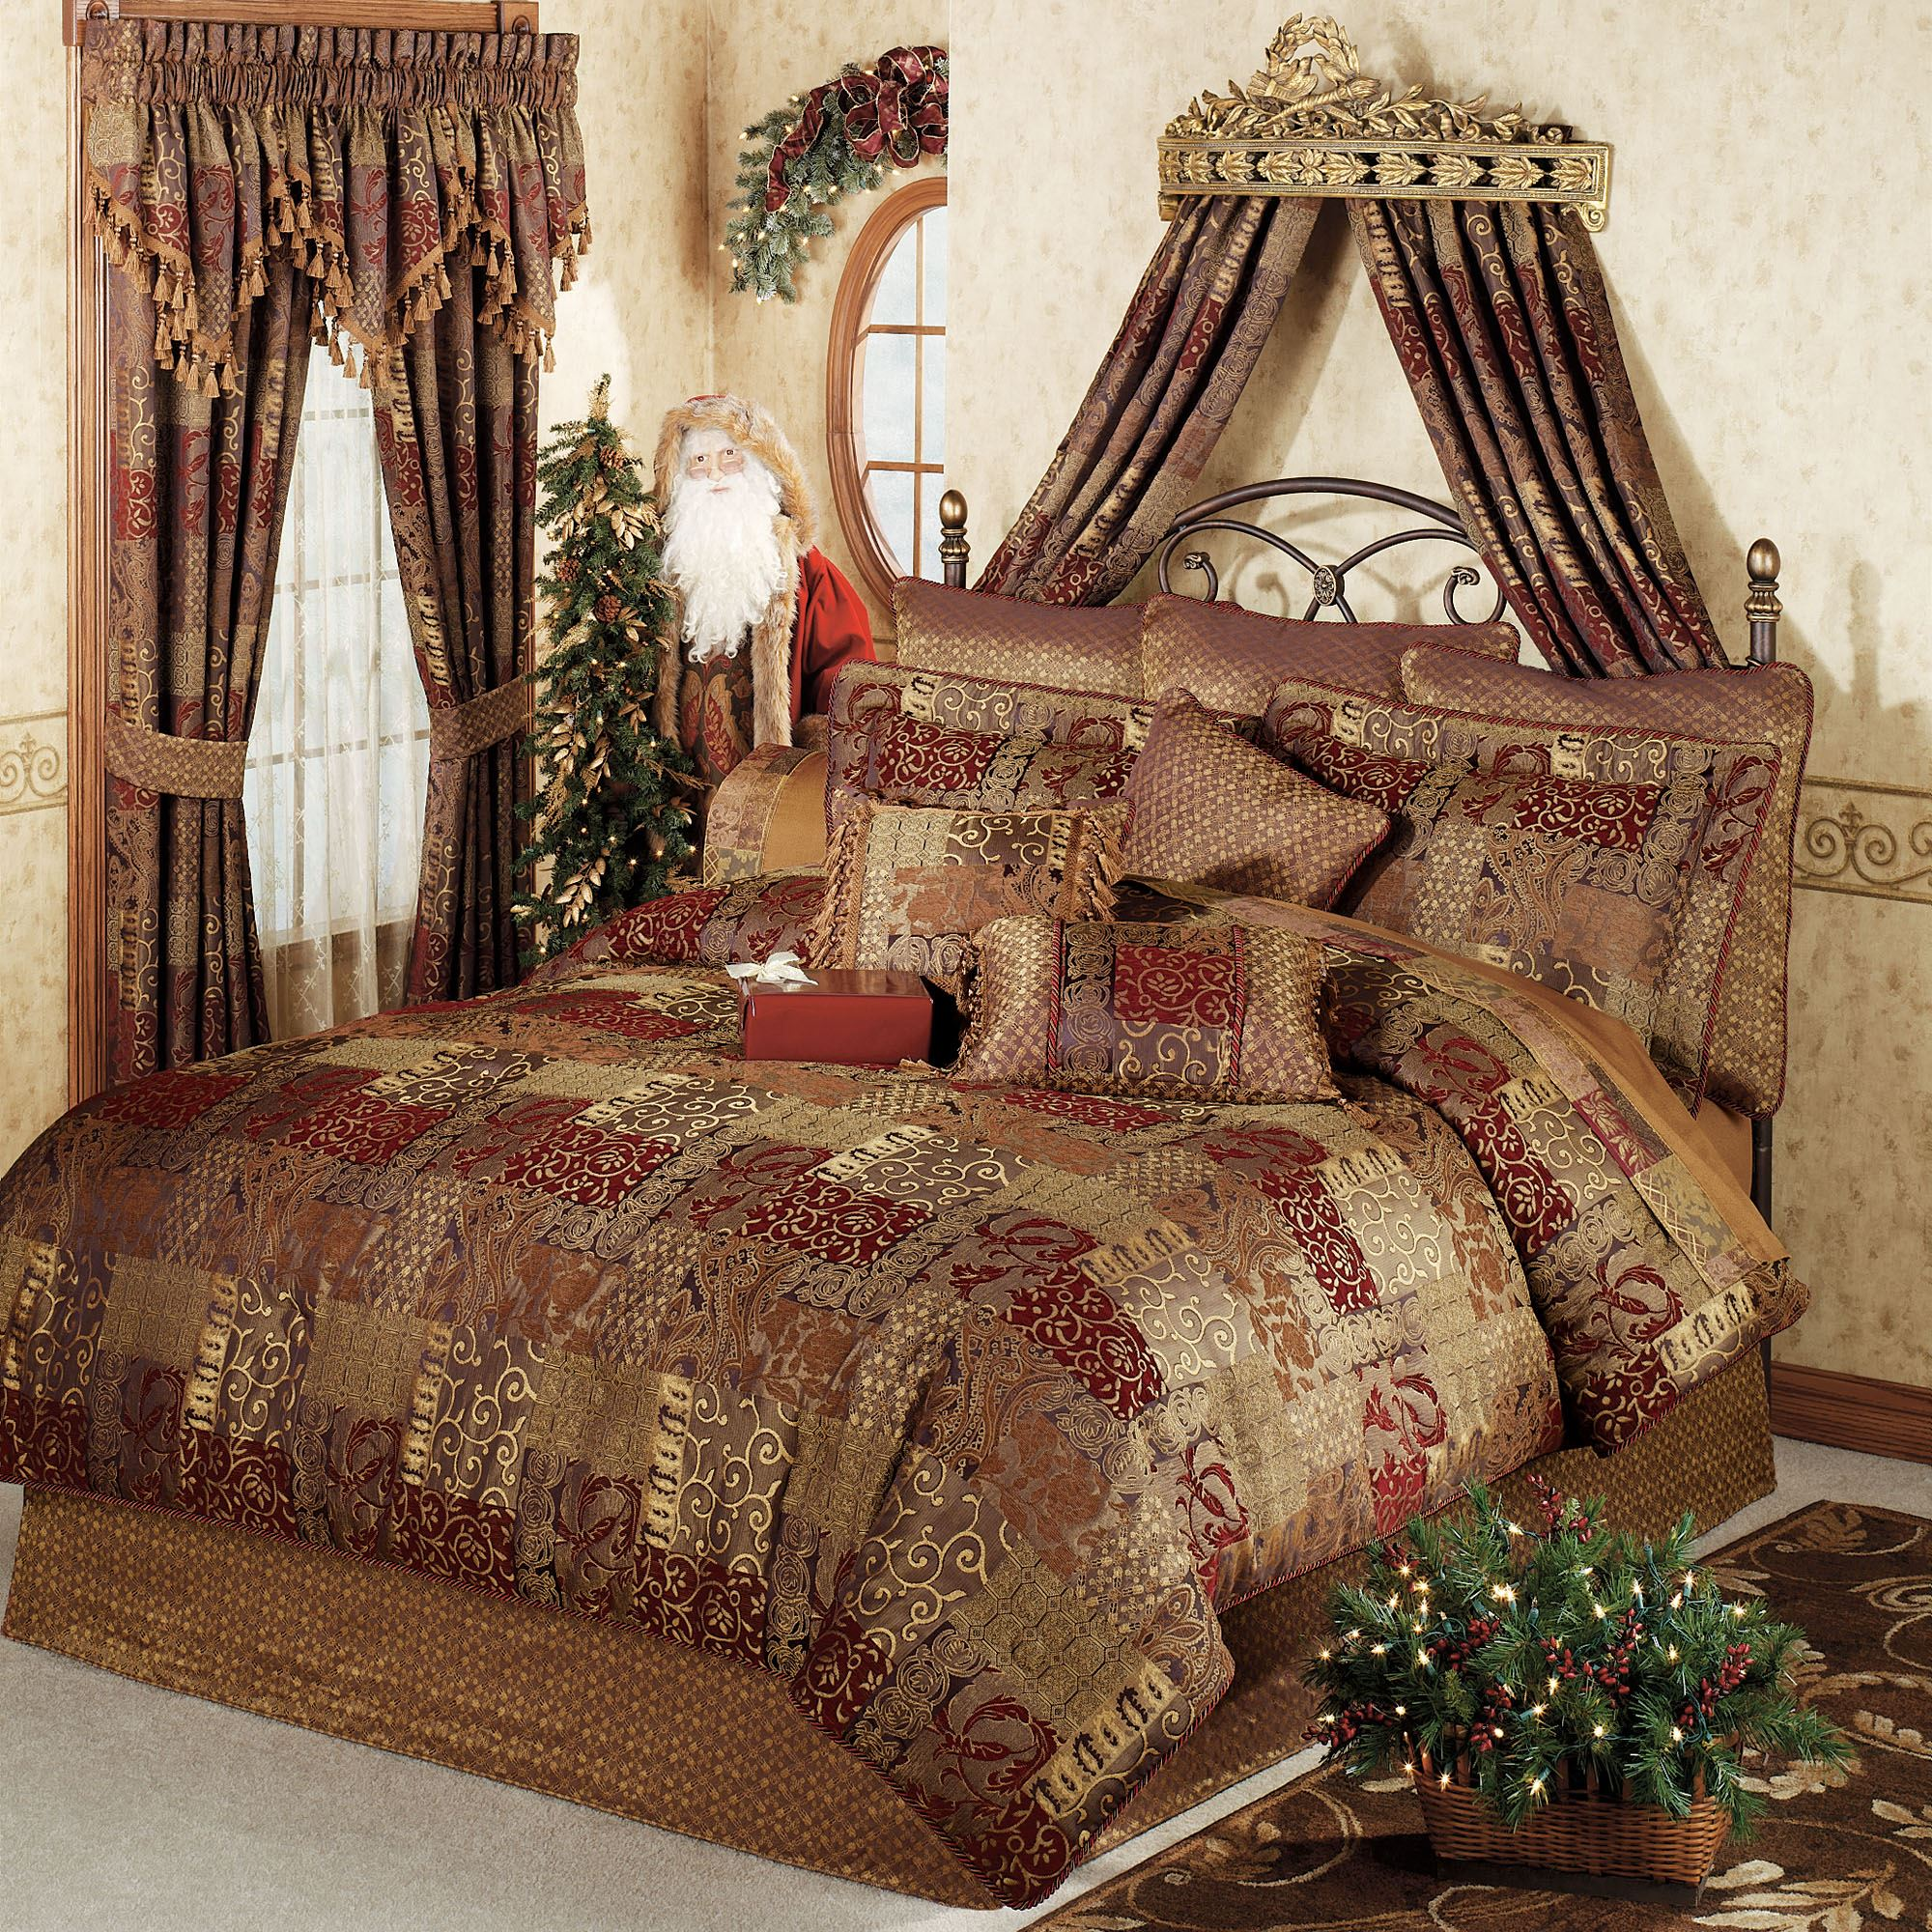 Galleria comforter bedding by croscill - Bedroom sheets and comforter sets ...